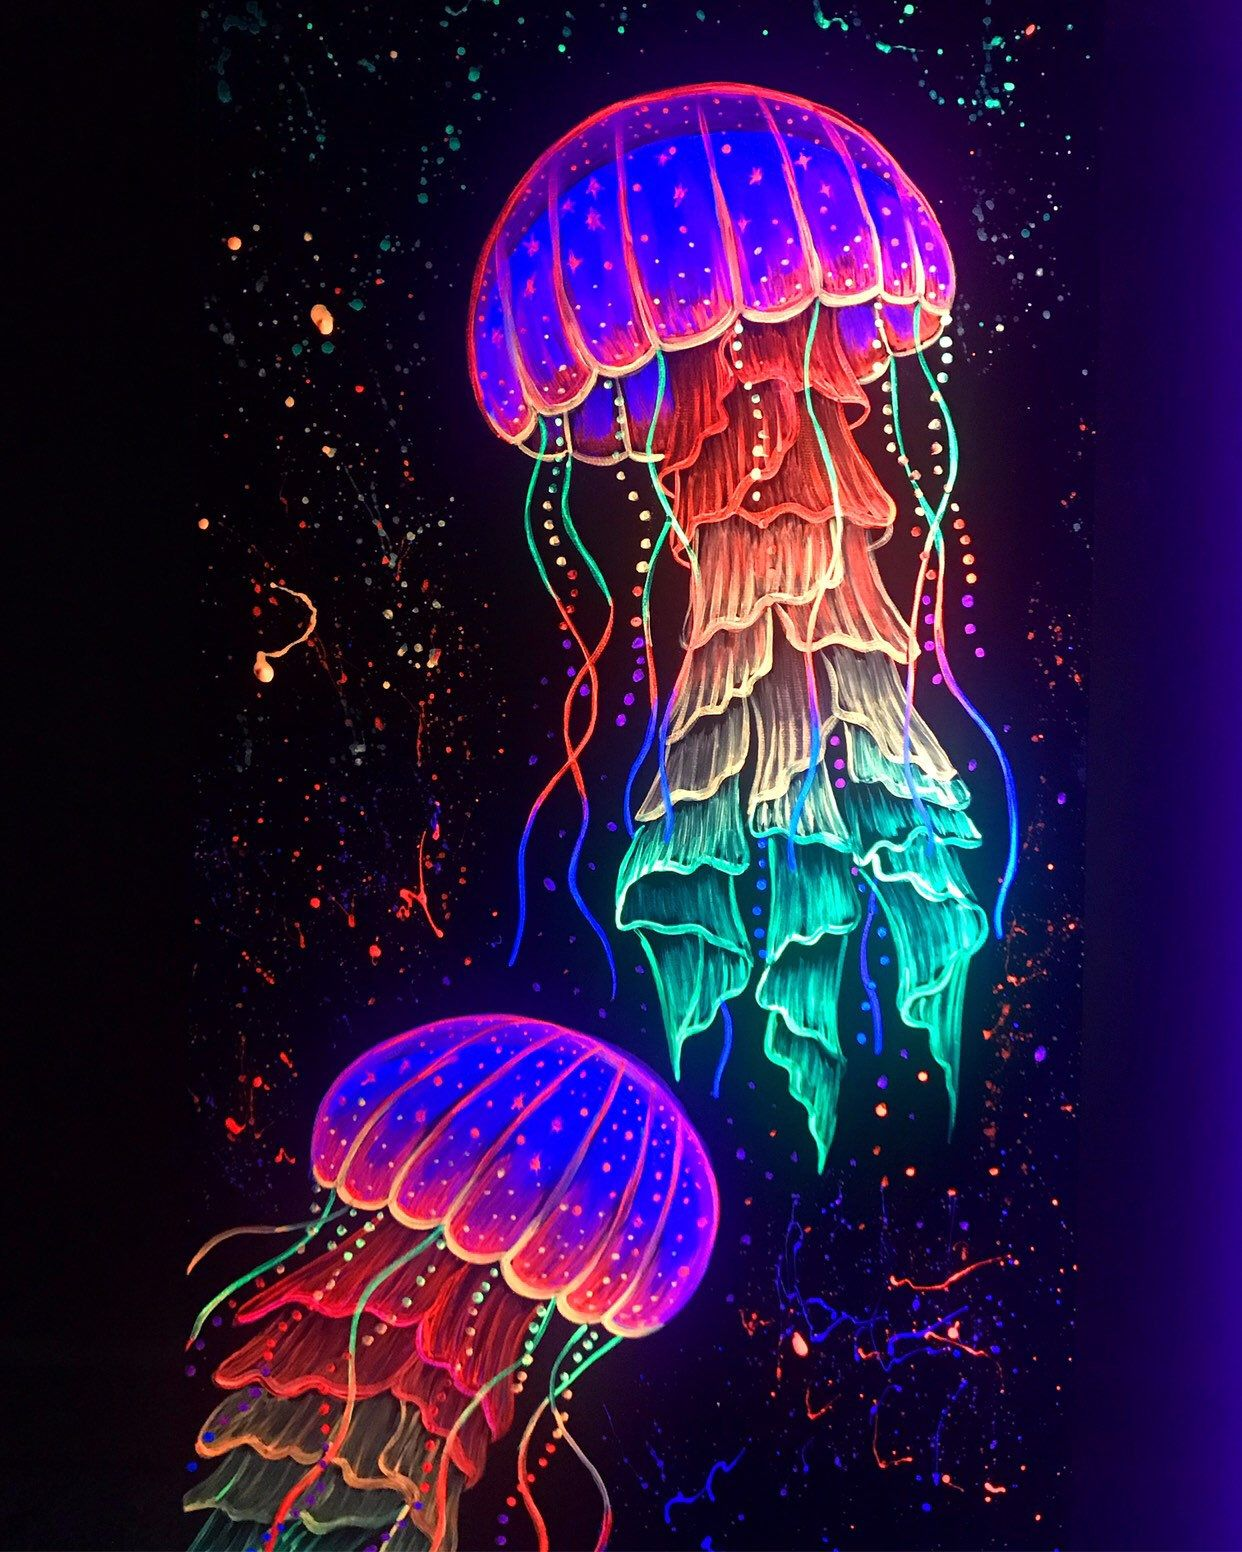 Blacklight Jellyfish Painting In Neon Paint Etsy Jellyfish Painting Neon Painting Jellyfish Art